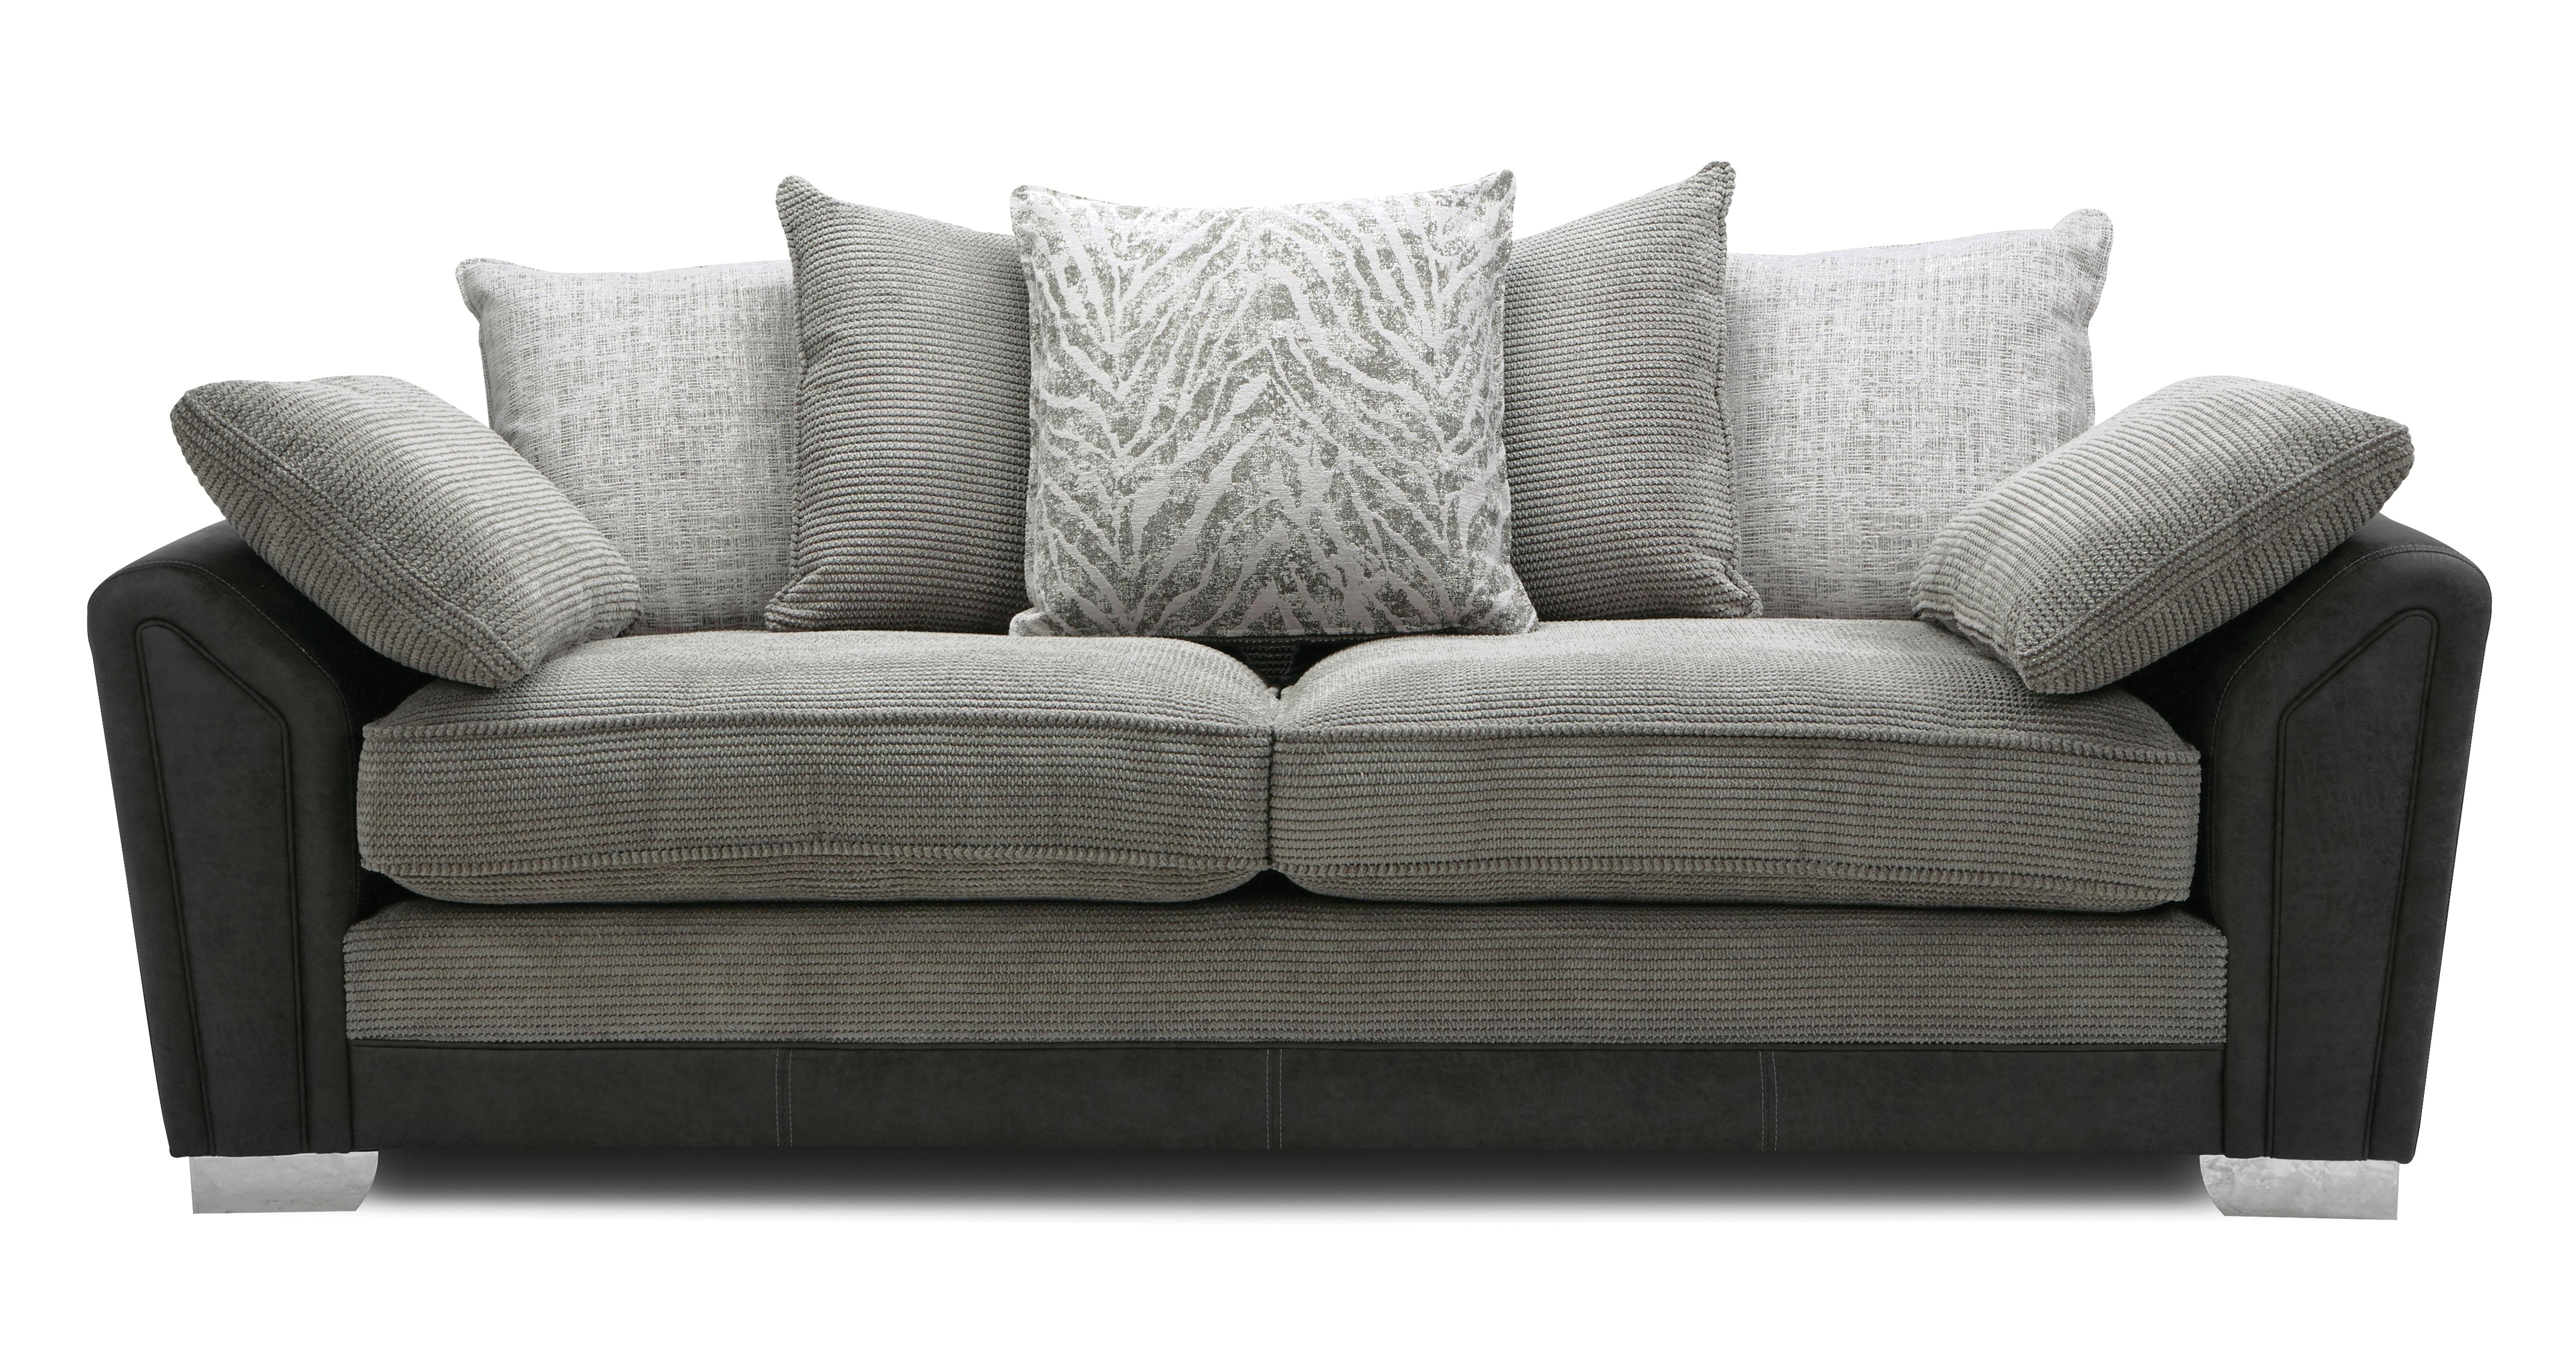 Zara: Pillow Back 4 Seater Sofa